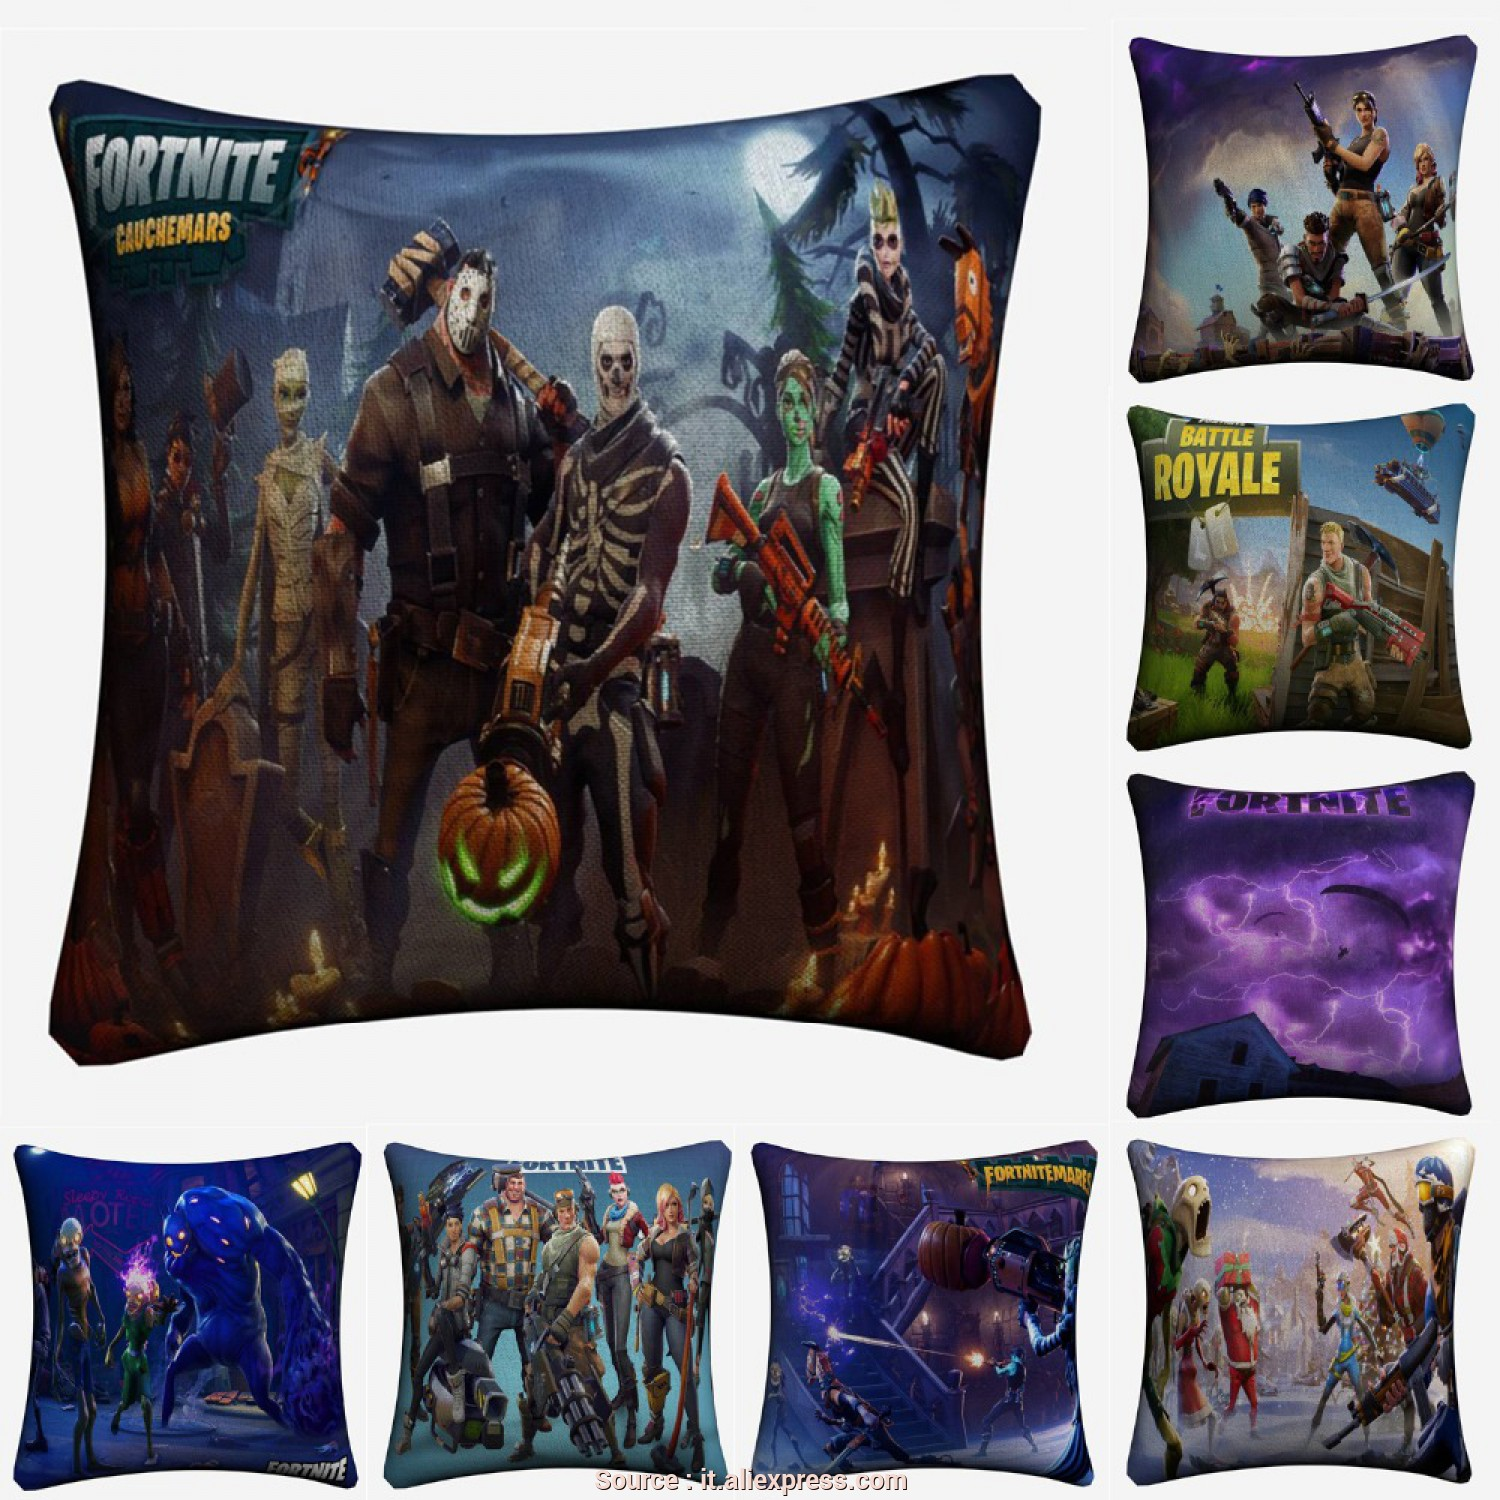 Cuscini, Divano 45X45, Affascinante Fortnite 3D Battle Royale Gioco Decorative Lino Cuscino, Divano Sedia 45X45 Cm Throw Pillow Caso Home Decor Almofada In Fortnite 3D Battle Royale Gioco